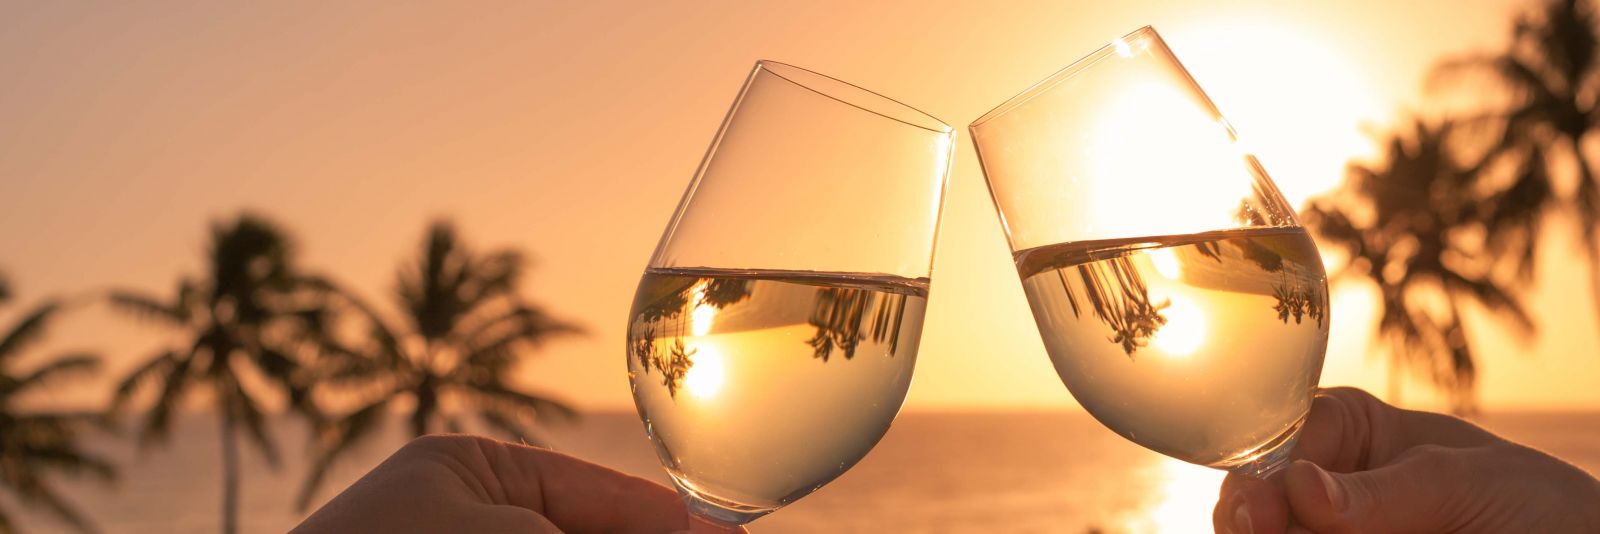 Drinking wine by sunset on the beach